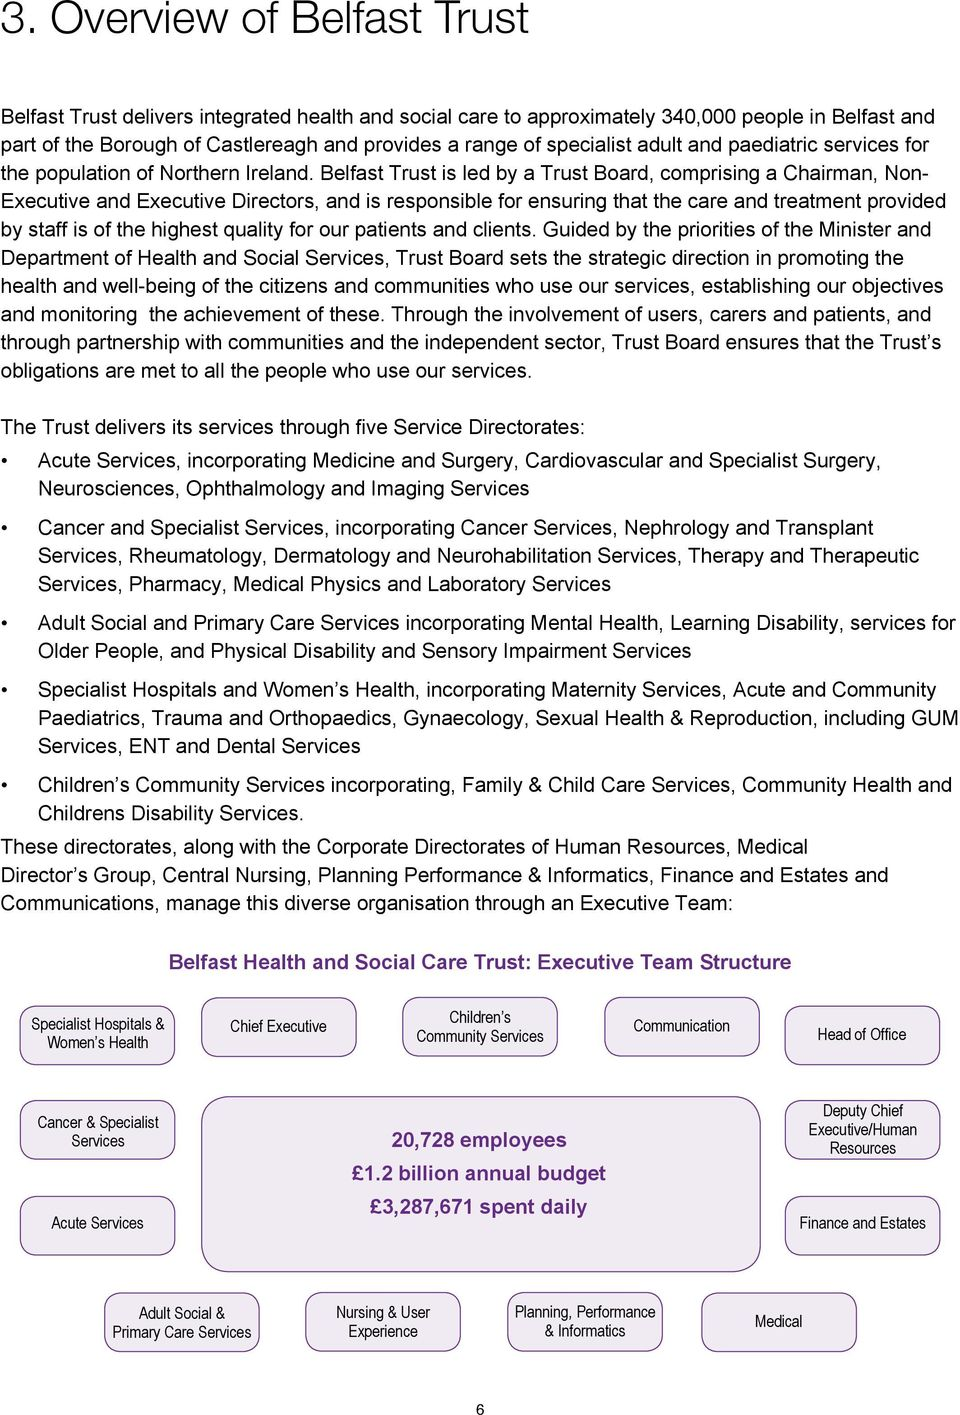 Belfast Trust is led by a Trust Board, comprising a Chairman, Non- Executive and Executive Directors, and is responsible for ensuring that the care and treatment provided by staff is of the highest